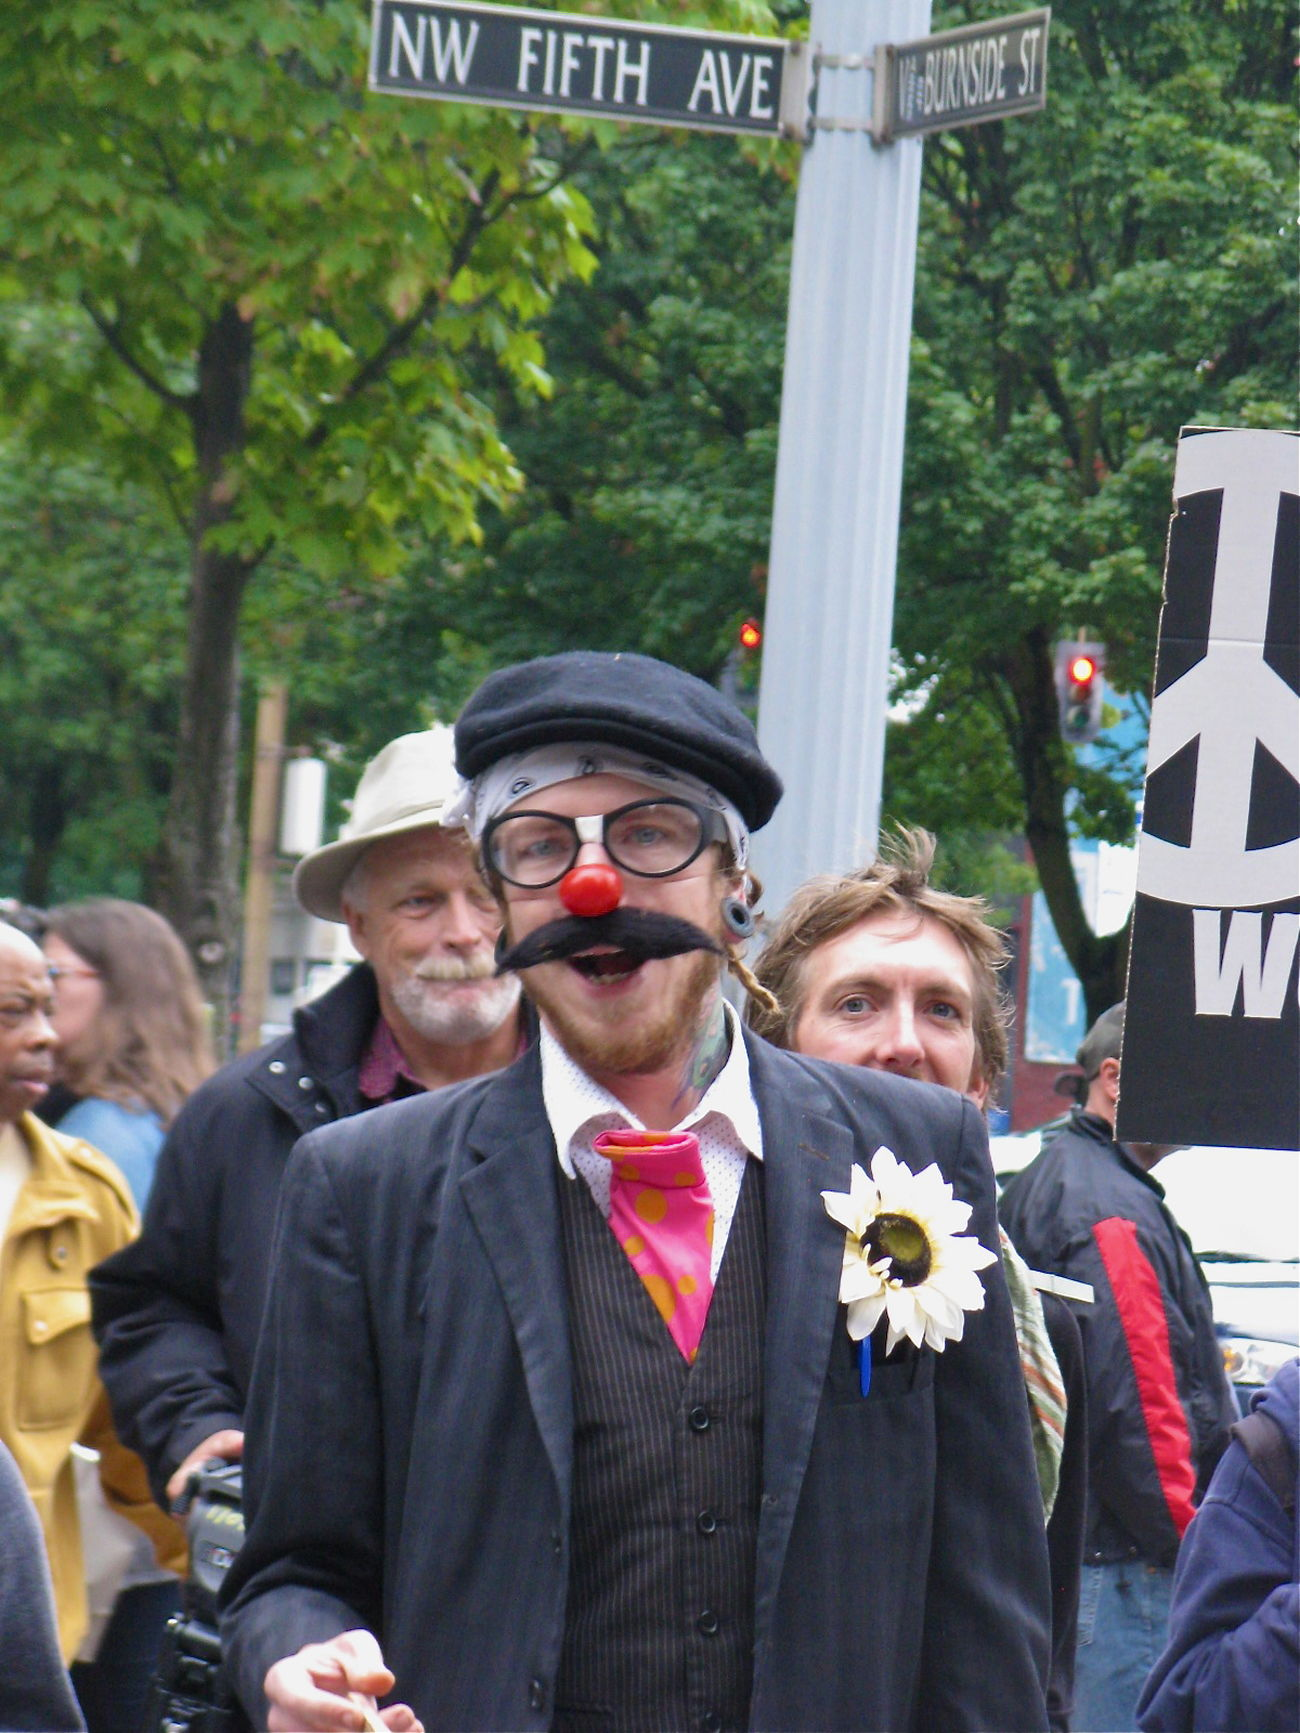 Occupy Portland, September 6, 2011 #OccupyPortland #portland Day Occupy Portland Portrait Protest Protesters Up Close Street Photography The Street Photographer - 2016 EyeEm Awards People And Places People Together Clown Enjoy The New Normal Uniqueness Resist The Street Photographer The Street Photographer - 2017 EyeEm Awards